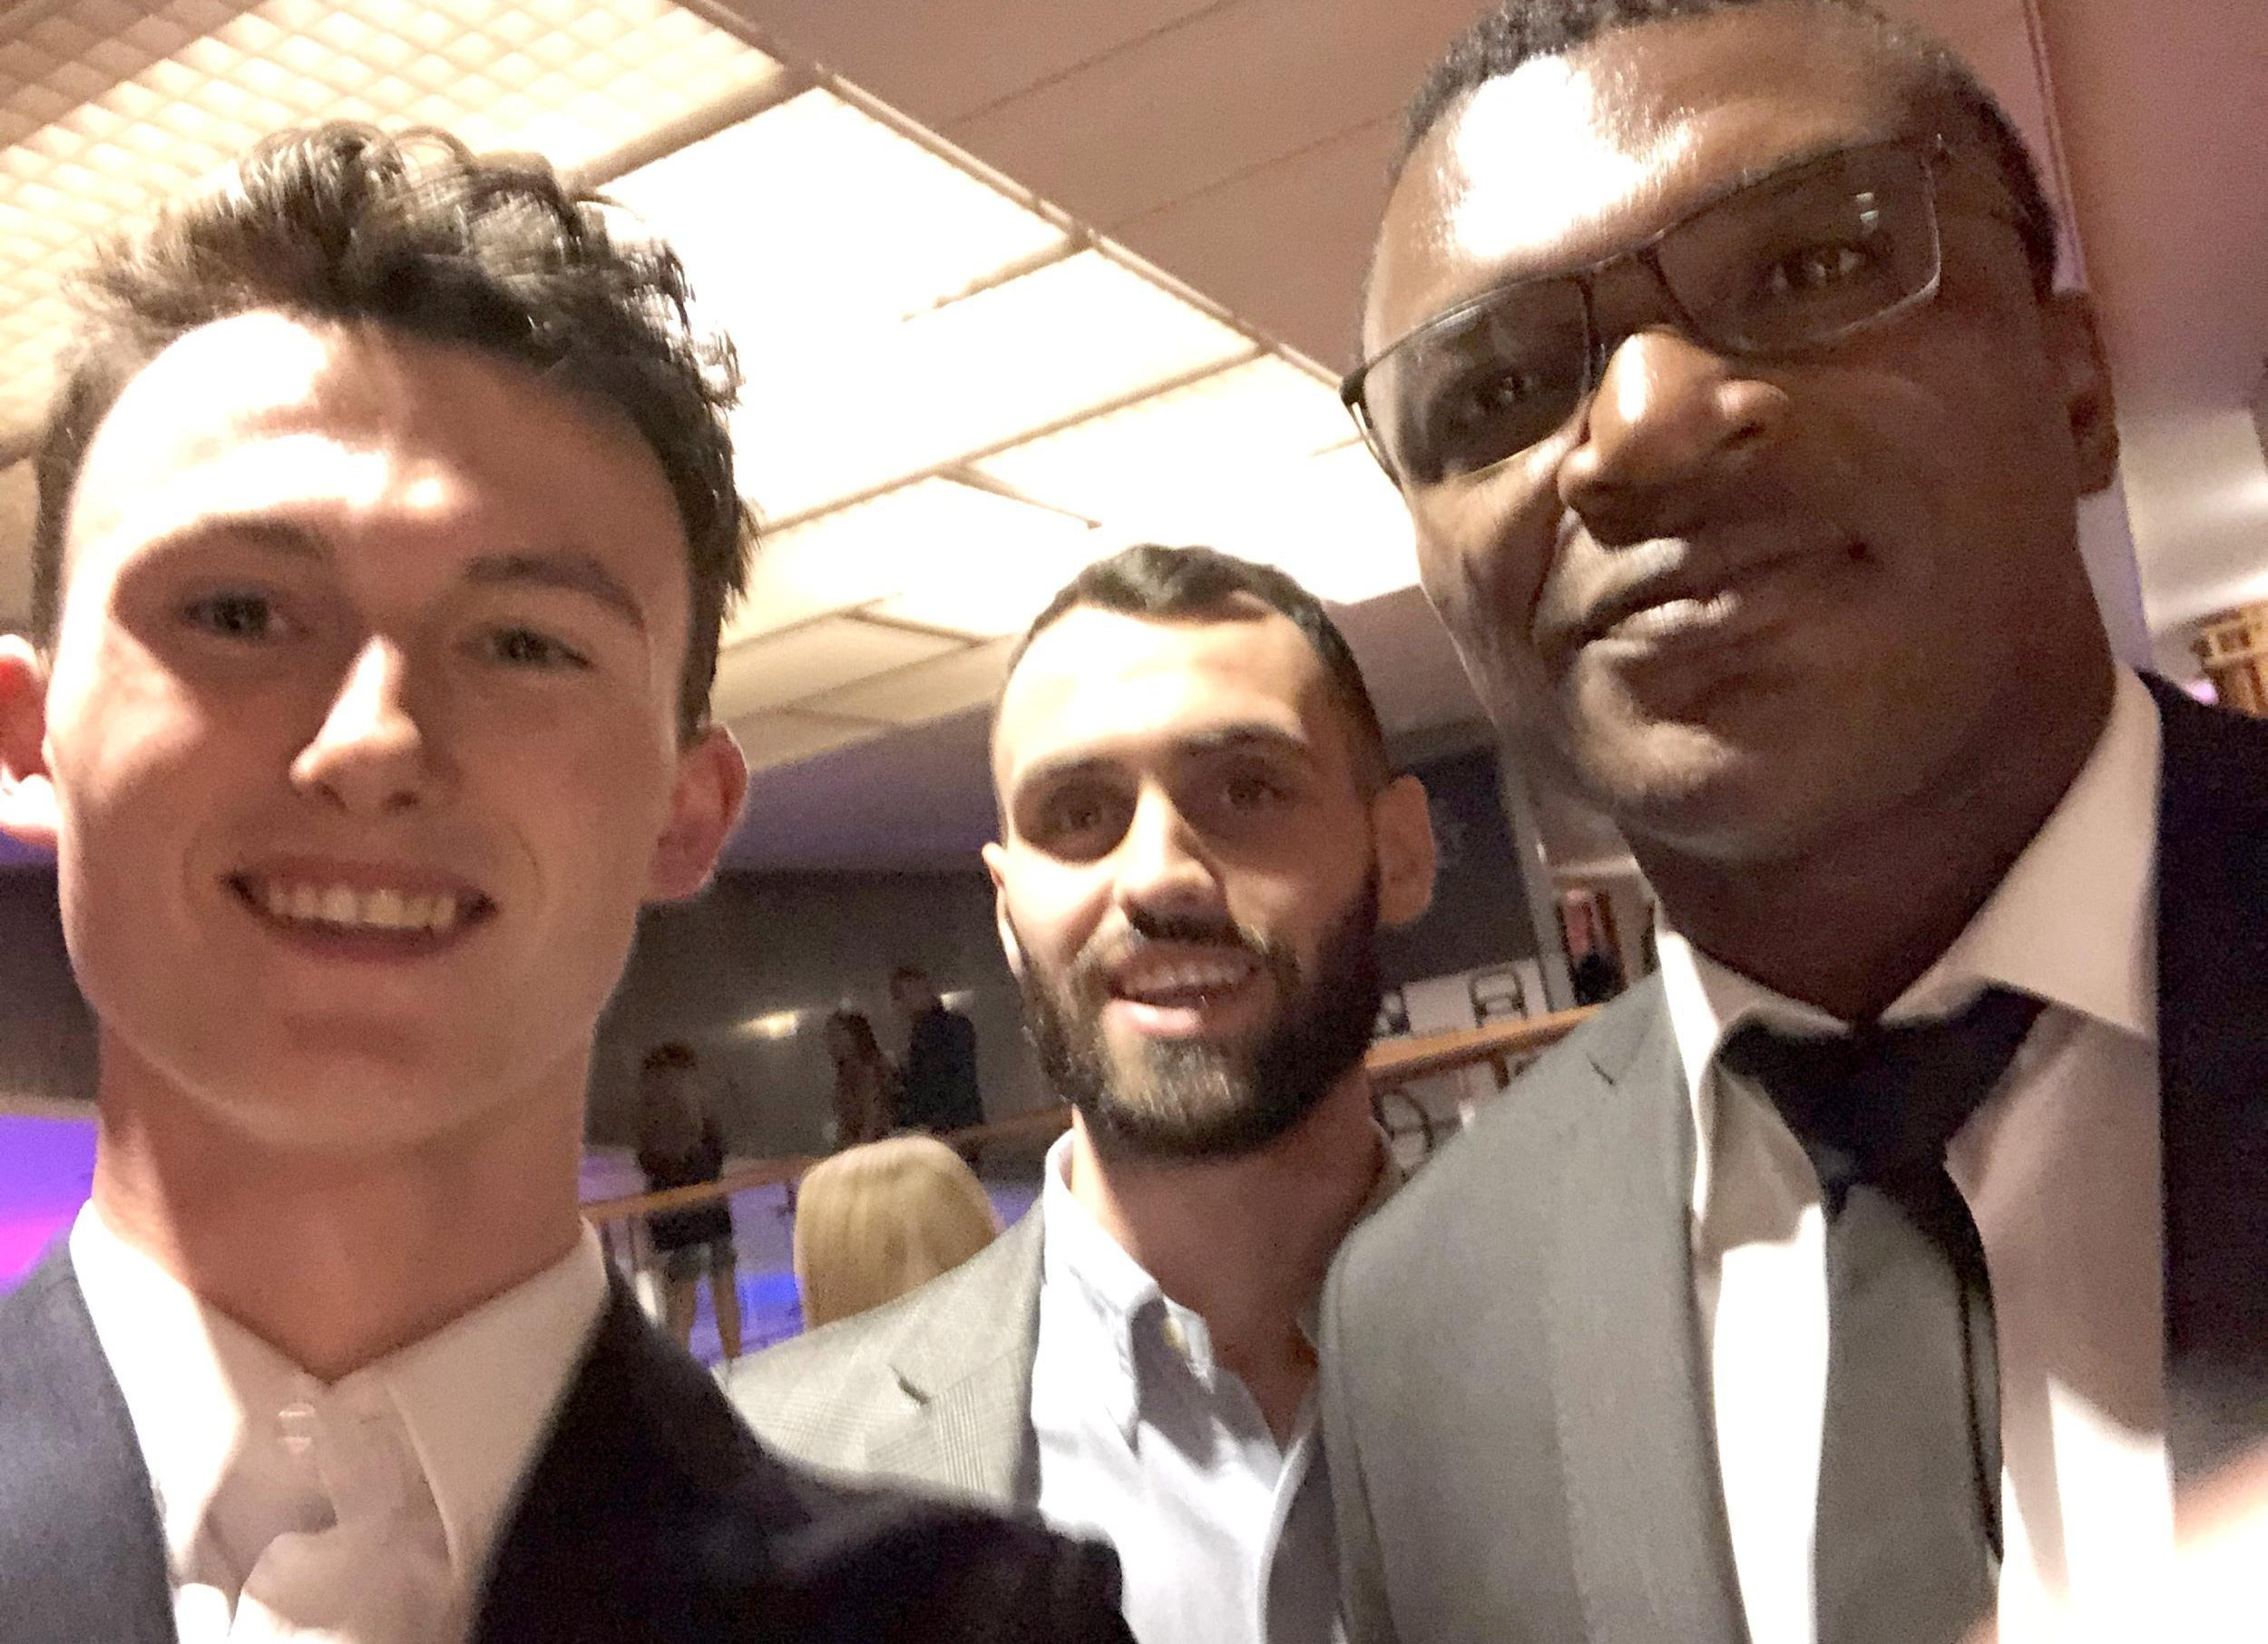 The cousins also met France legend Marcel Desailly